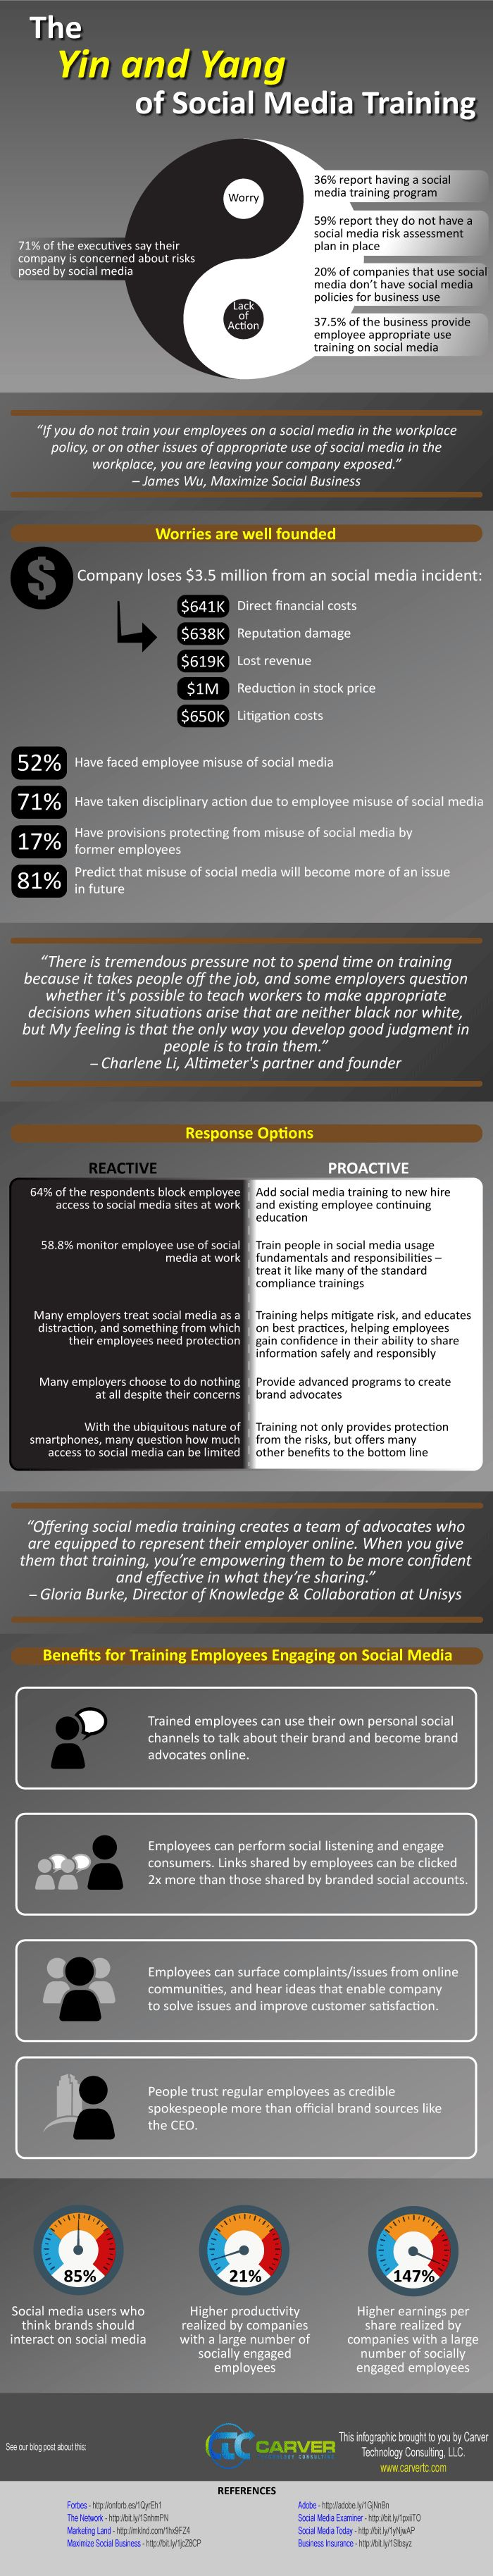 The Yin and Yang of Social Media Training [Infographic] | Social Media Today